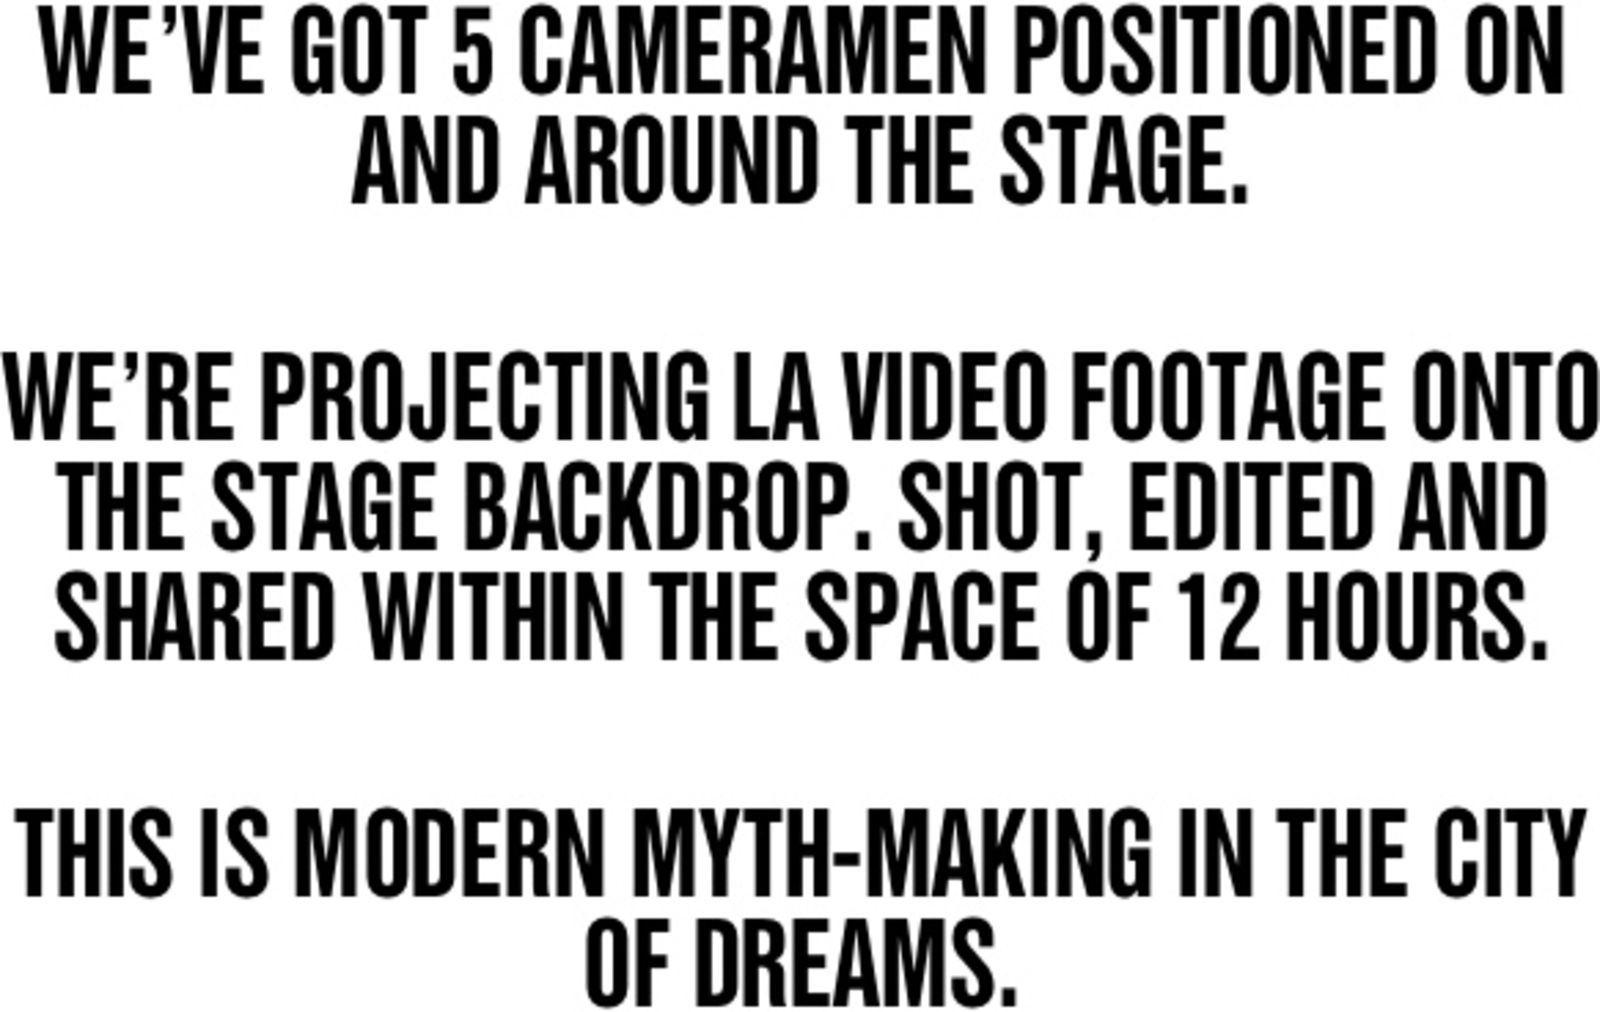 WE'VE GOT 5 CAMERAMEN POSITIONED ON AND AROUND THE STAGE. WE'RE PROJECTING LA VIDEO FOOTAGE ONTO THE STAGE BACKDROP. SHOT, EDITED AND SHARED WITHIN THE SPACE OF 12 HOURS. THIS IS MODERN MYTH-MAKING IN THE CITY OF DREAMS.